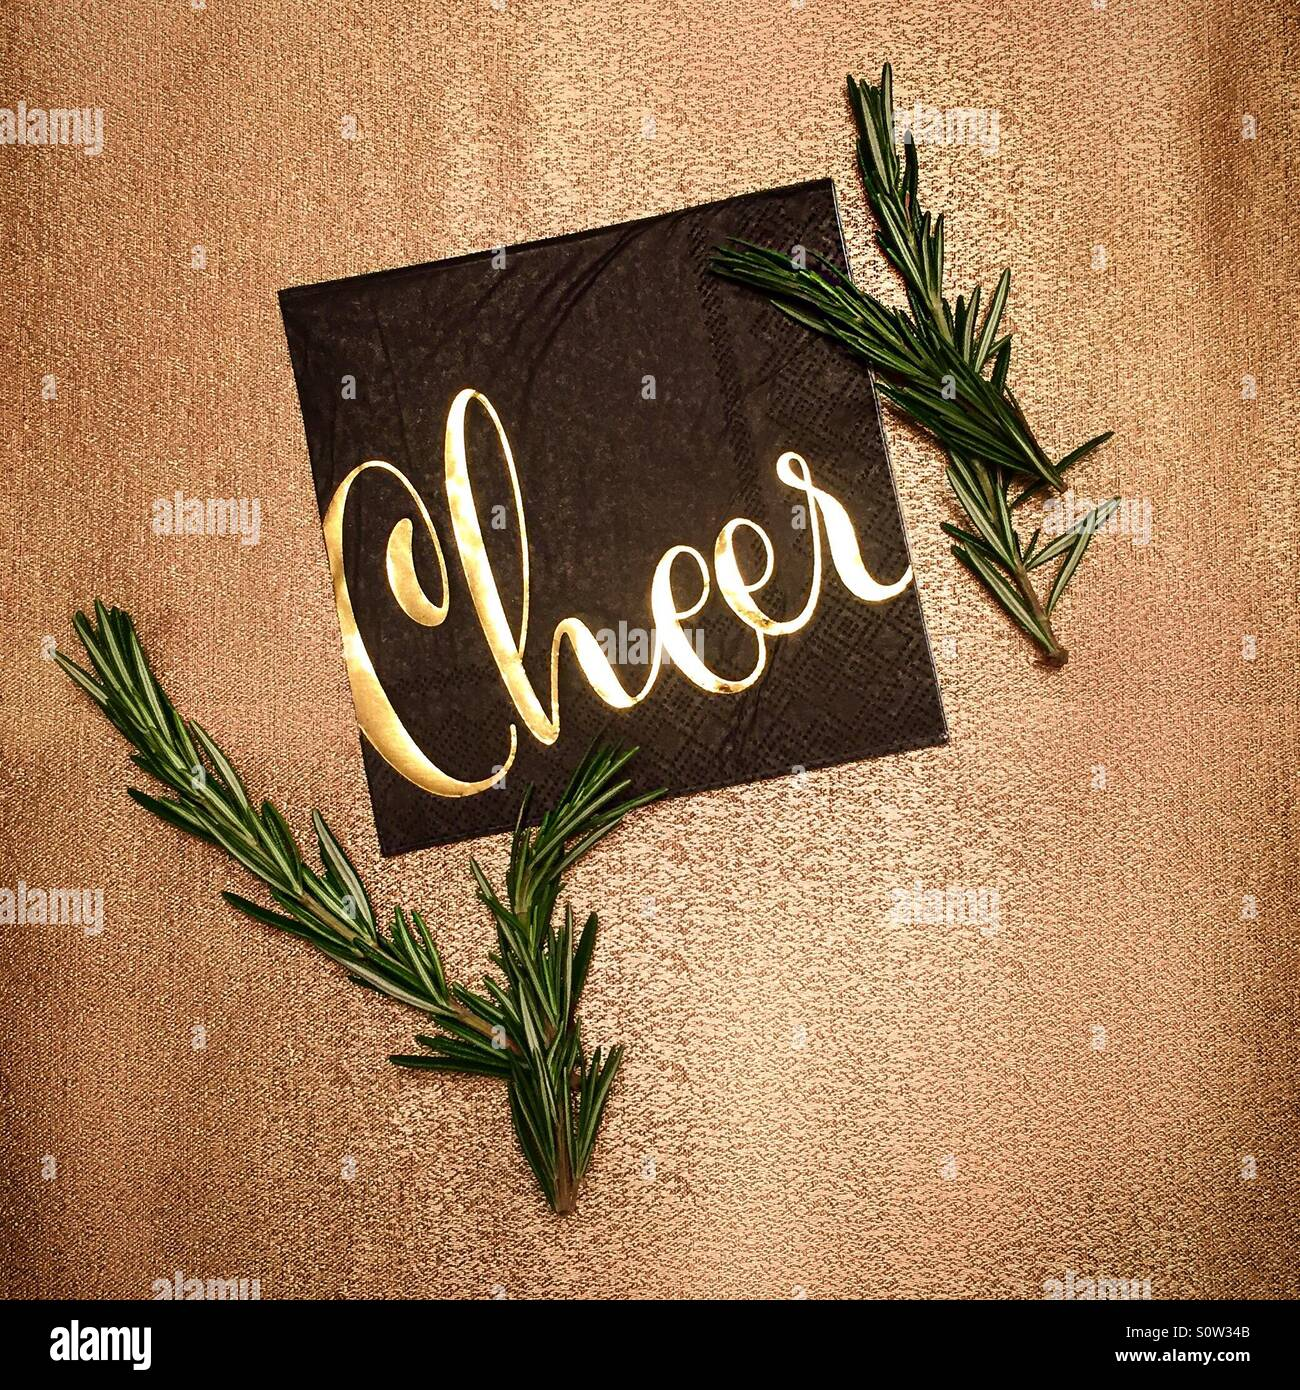 Cheer on New Years Eve! - Stock Image